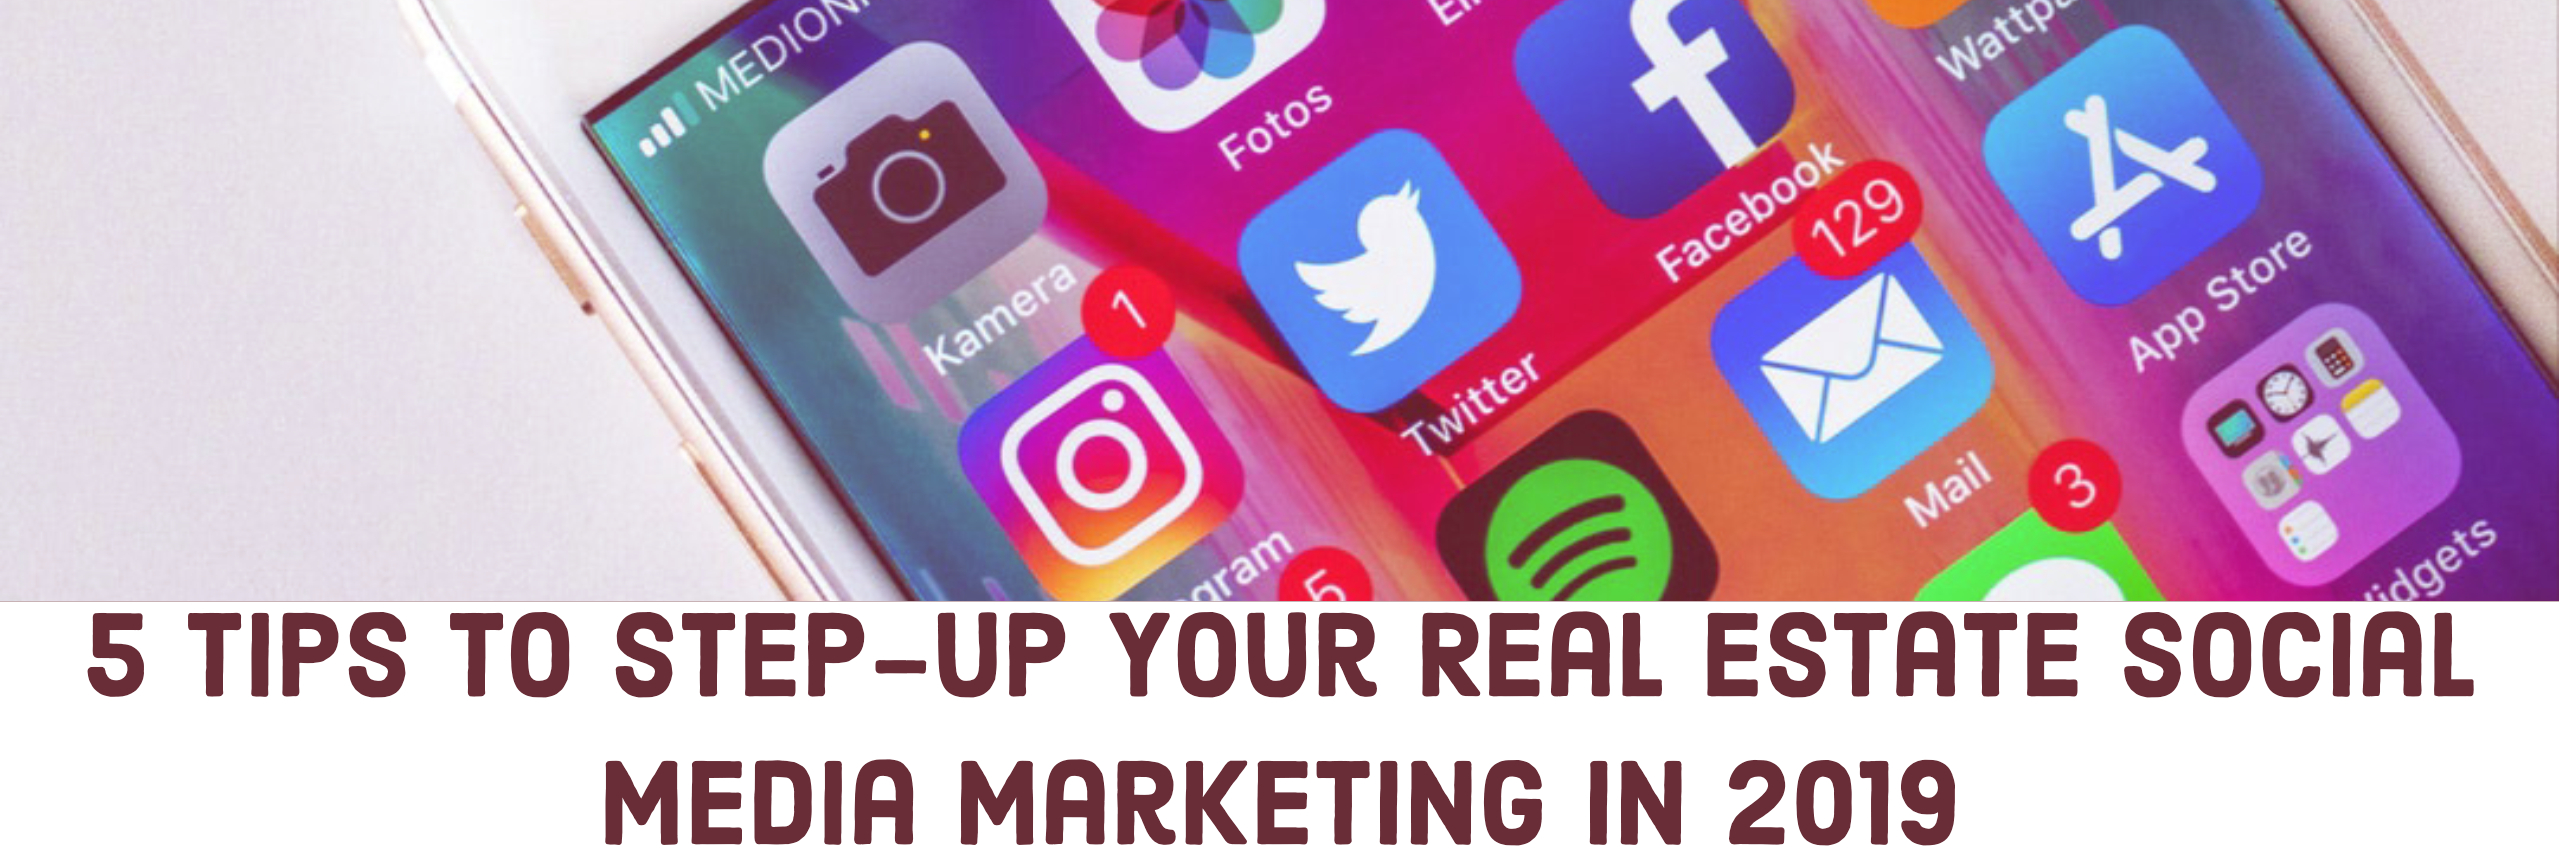 5 Tips to Step-Up Your Real Estate Social Media Marketing in 2019